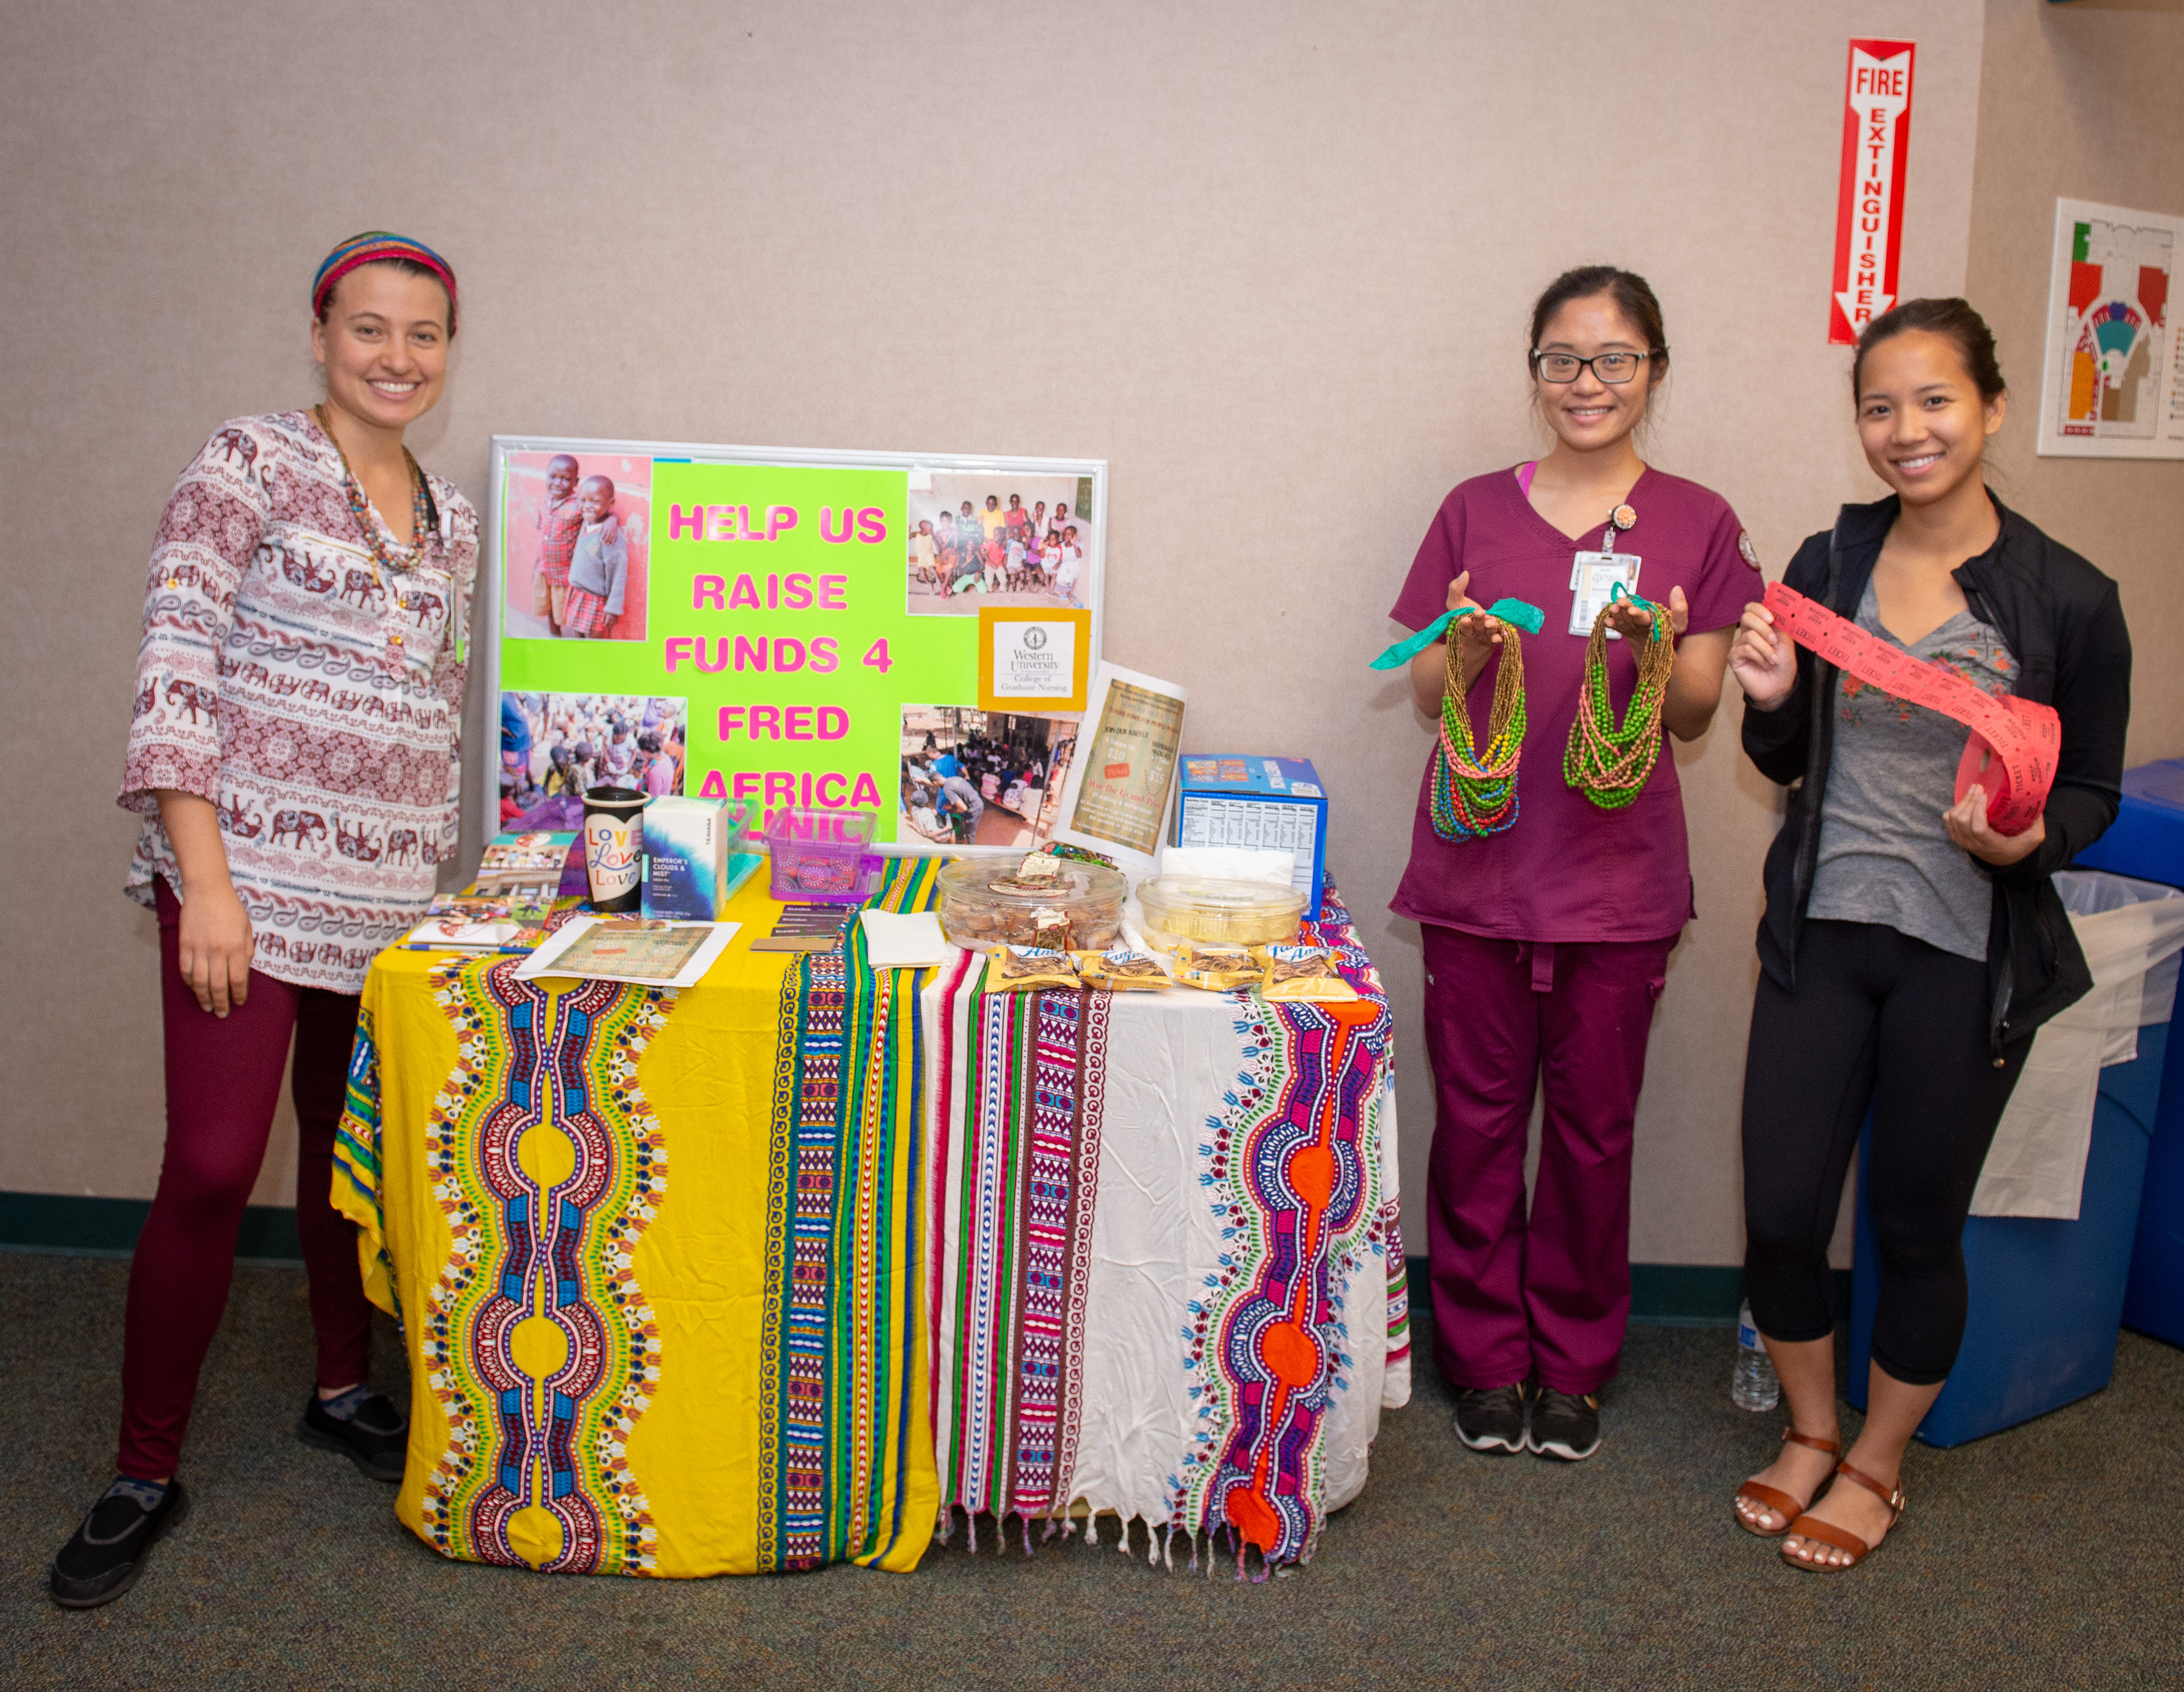 Nursing students raising funds to host a mobile medical clinic in Africa